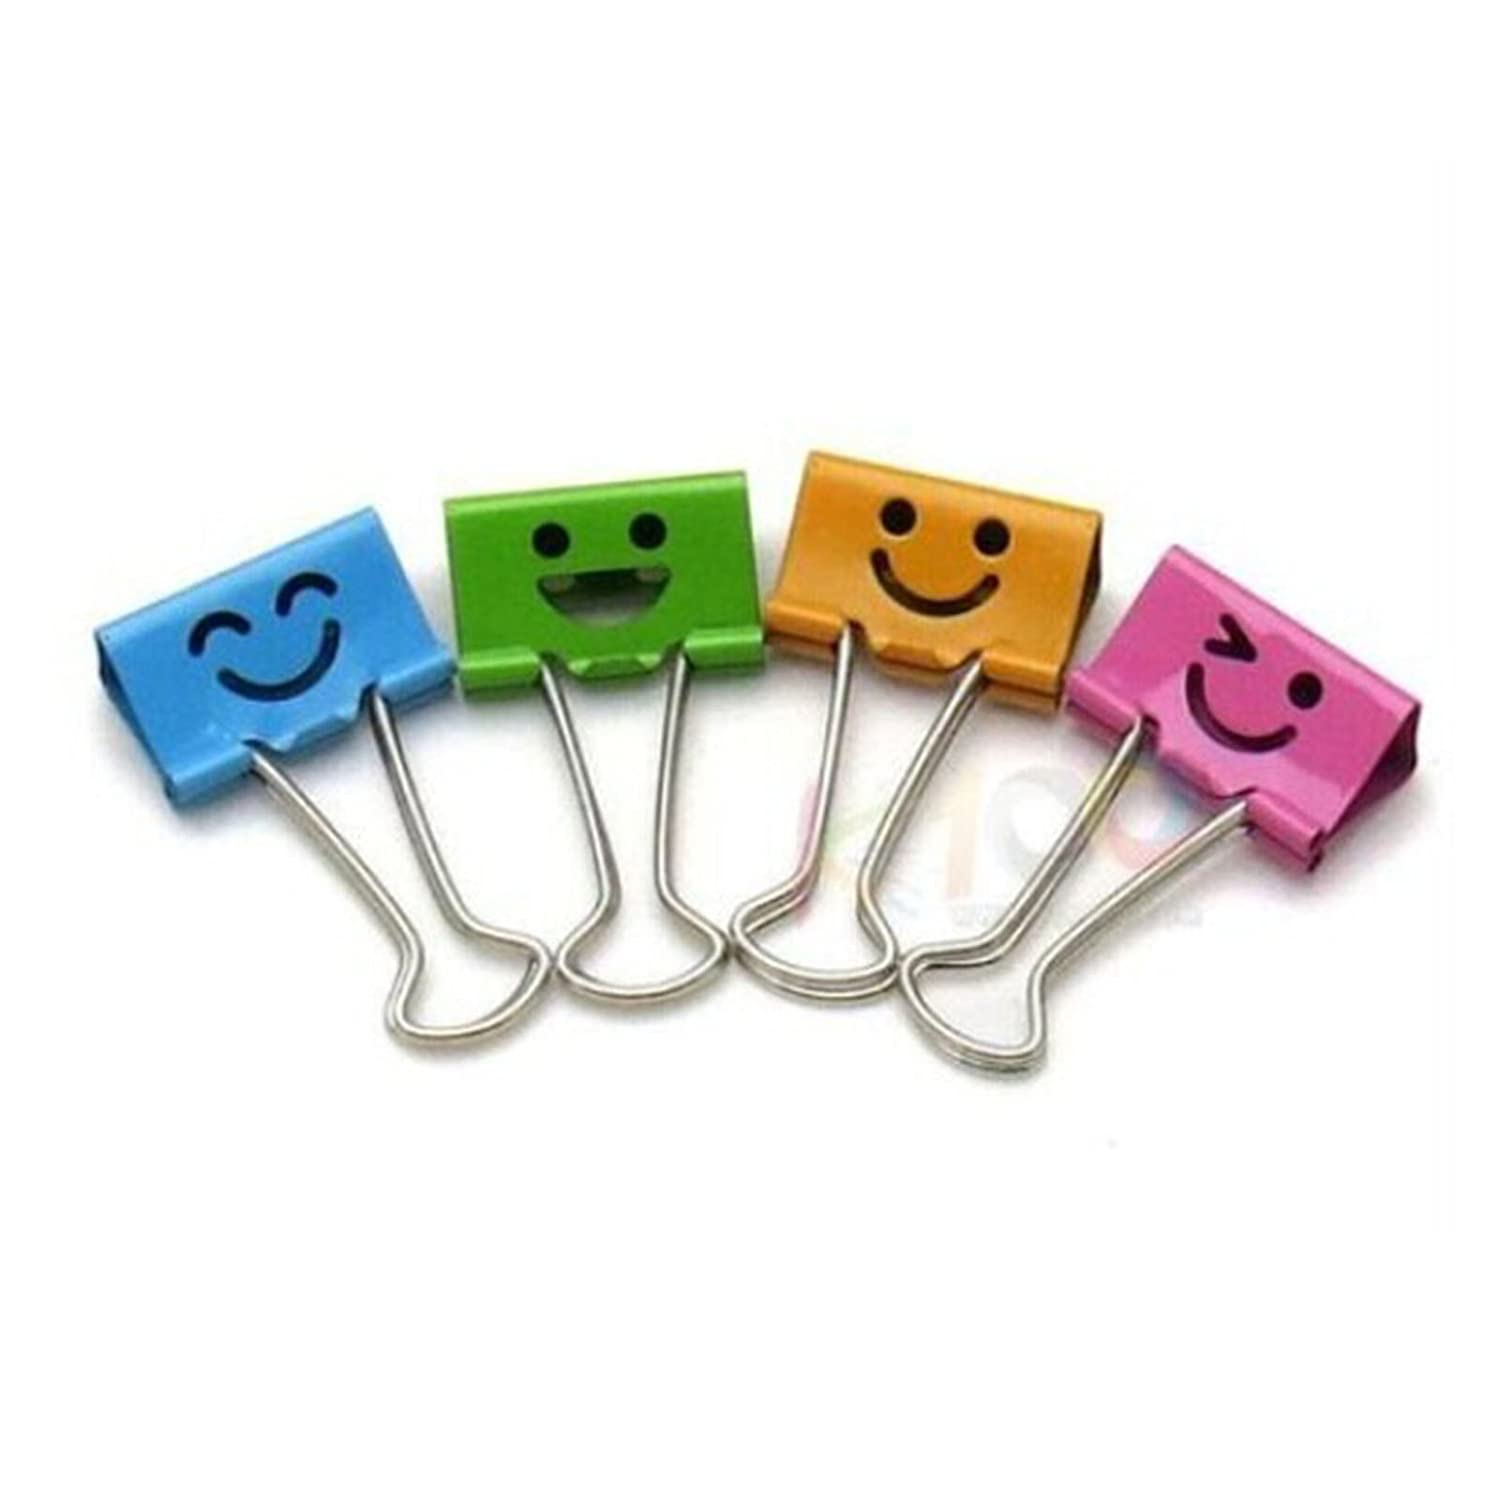 Amazon.com : DOOPOOTOO Smiling Binder Clips, 19mm, Assorted Colors, 40 Clips  per Tub : Paper Clips Binder Clips : Office Products